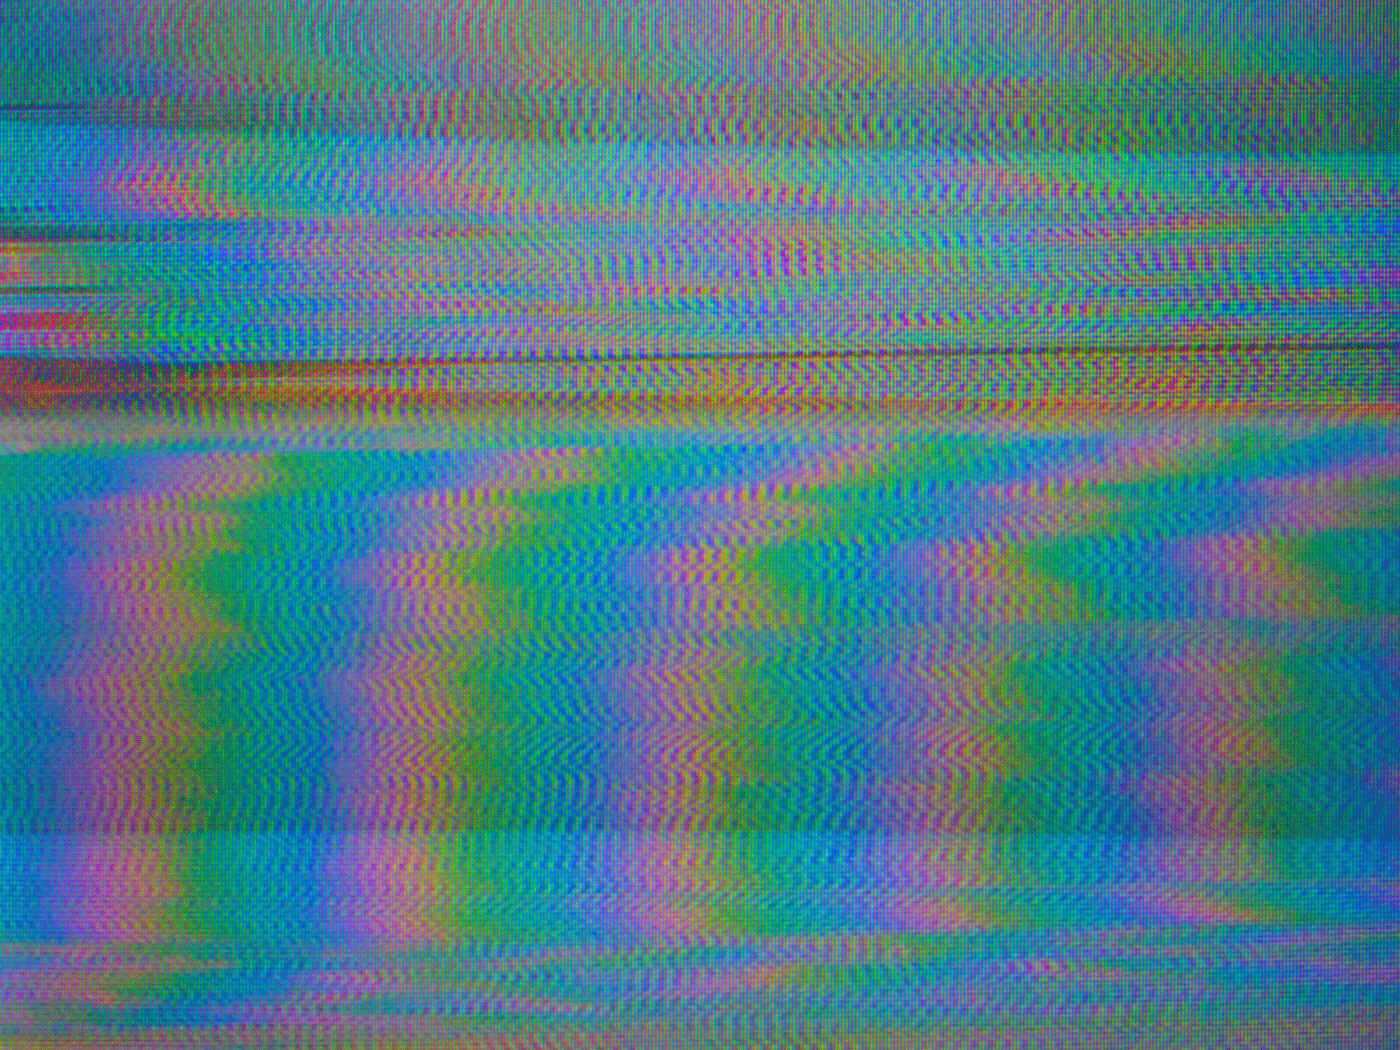 FREE VHS noise patterns